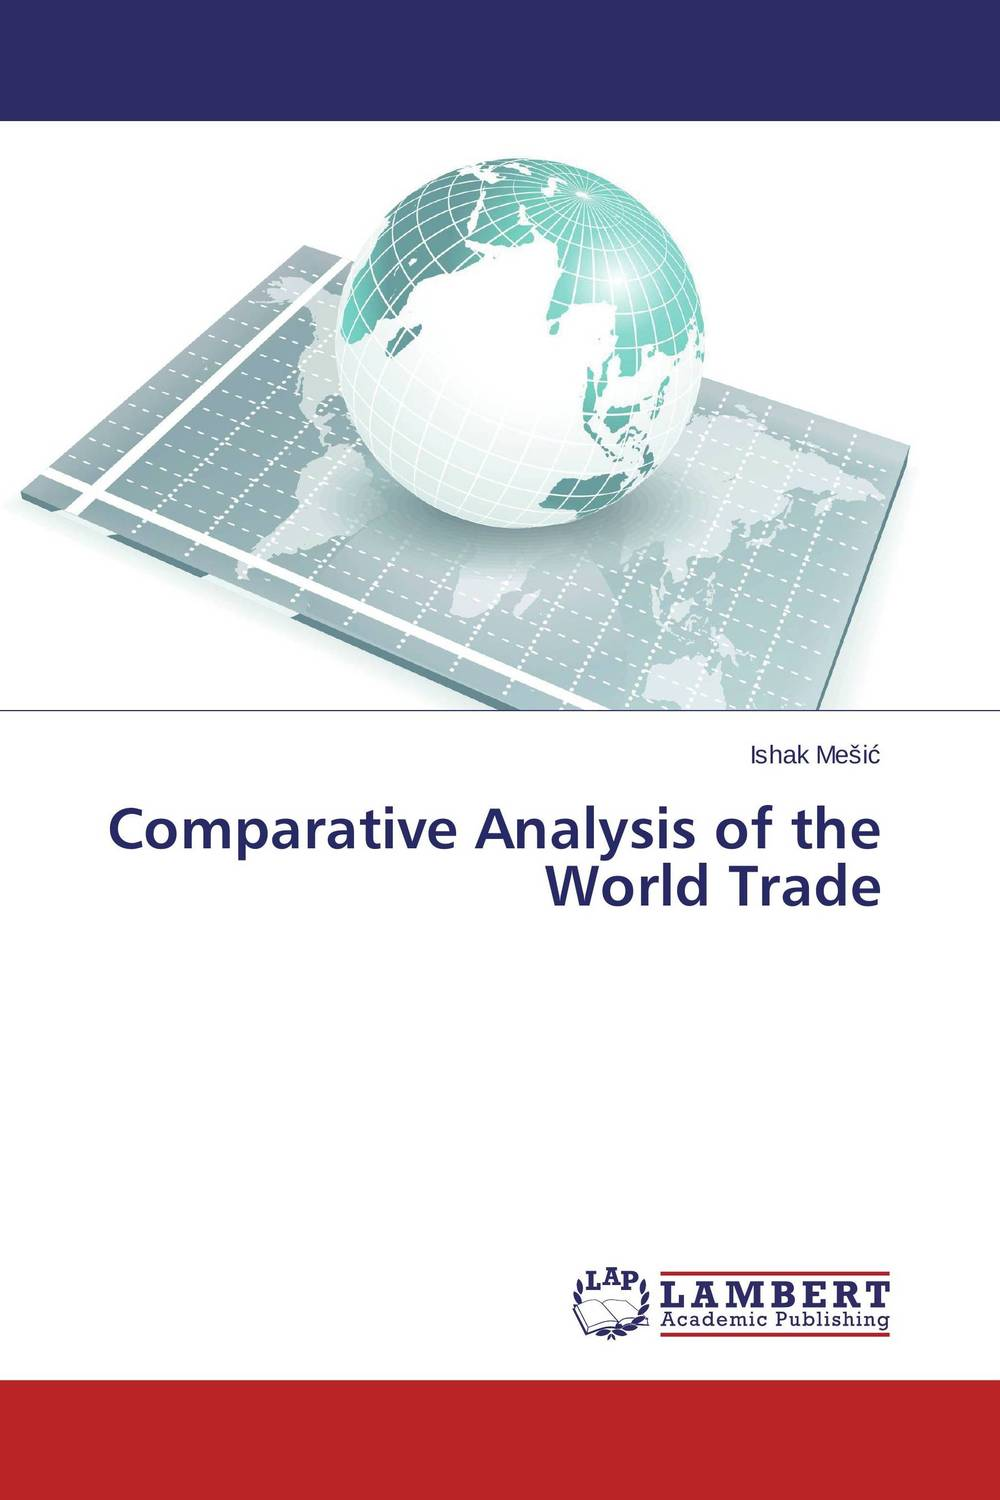 Comparative Analysis of the World Trade ishak mesic global trends in retail trade